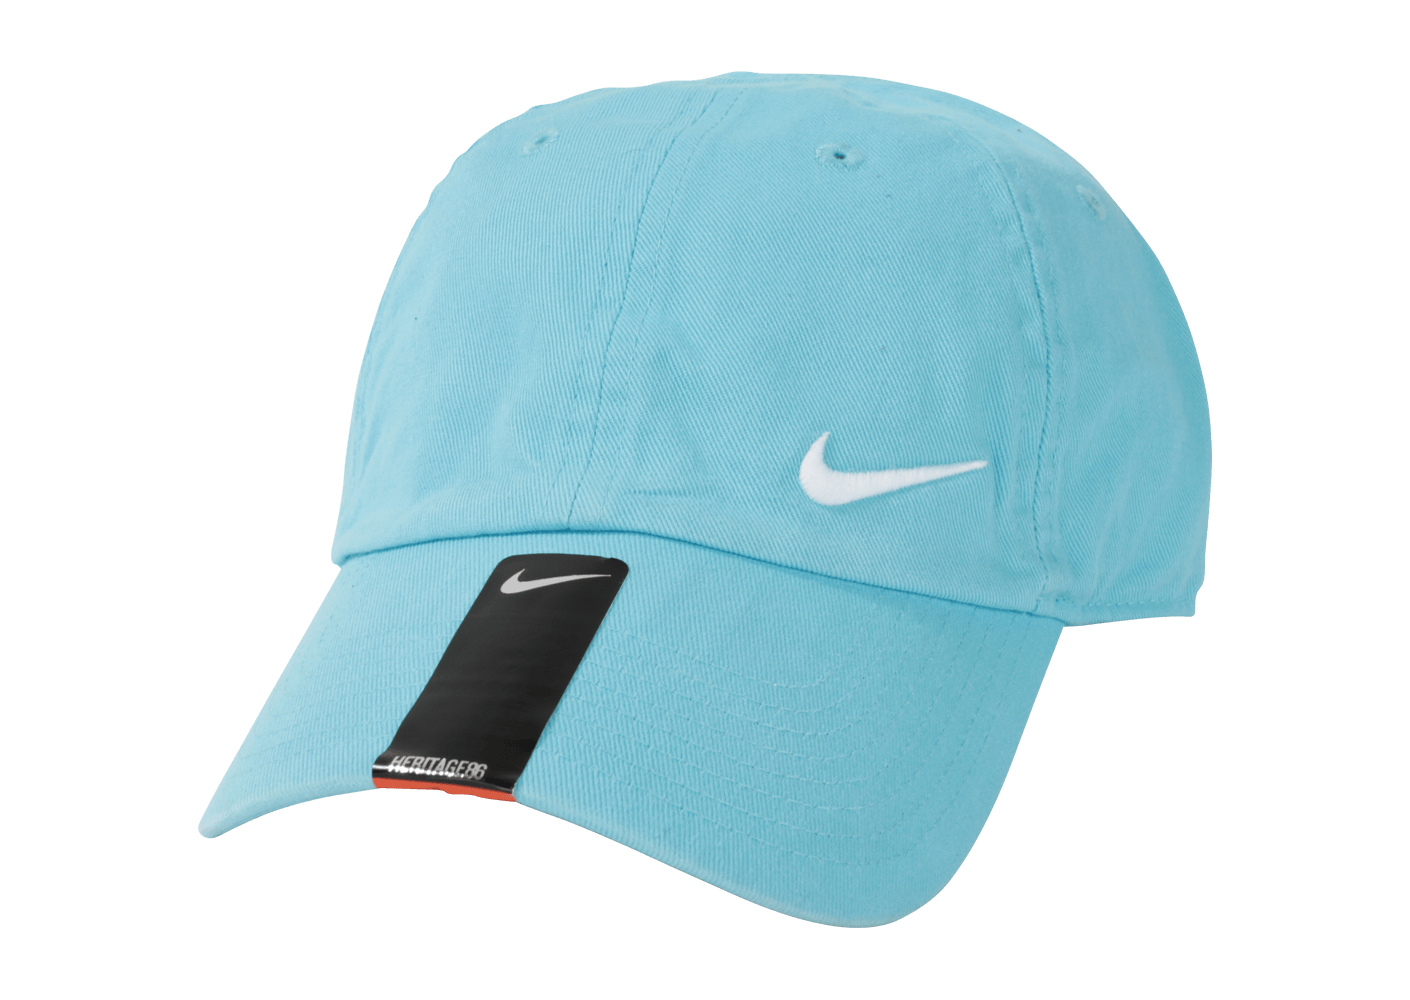 nike casquette heritage 86 bleu ciel black friday chausport. Black Bedroom Furniture Sets. Home Design Ideas